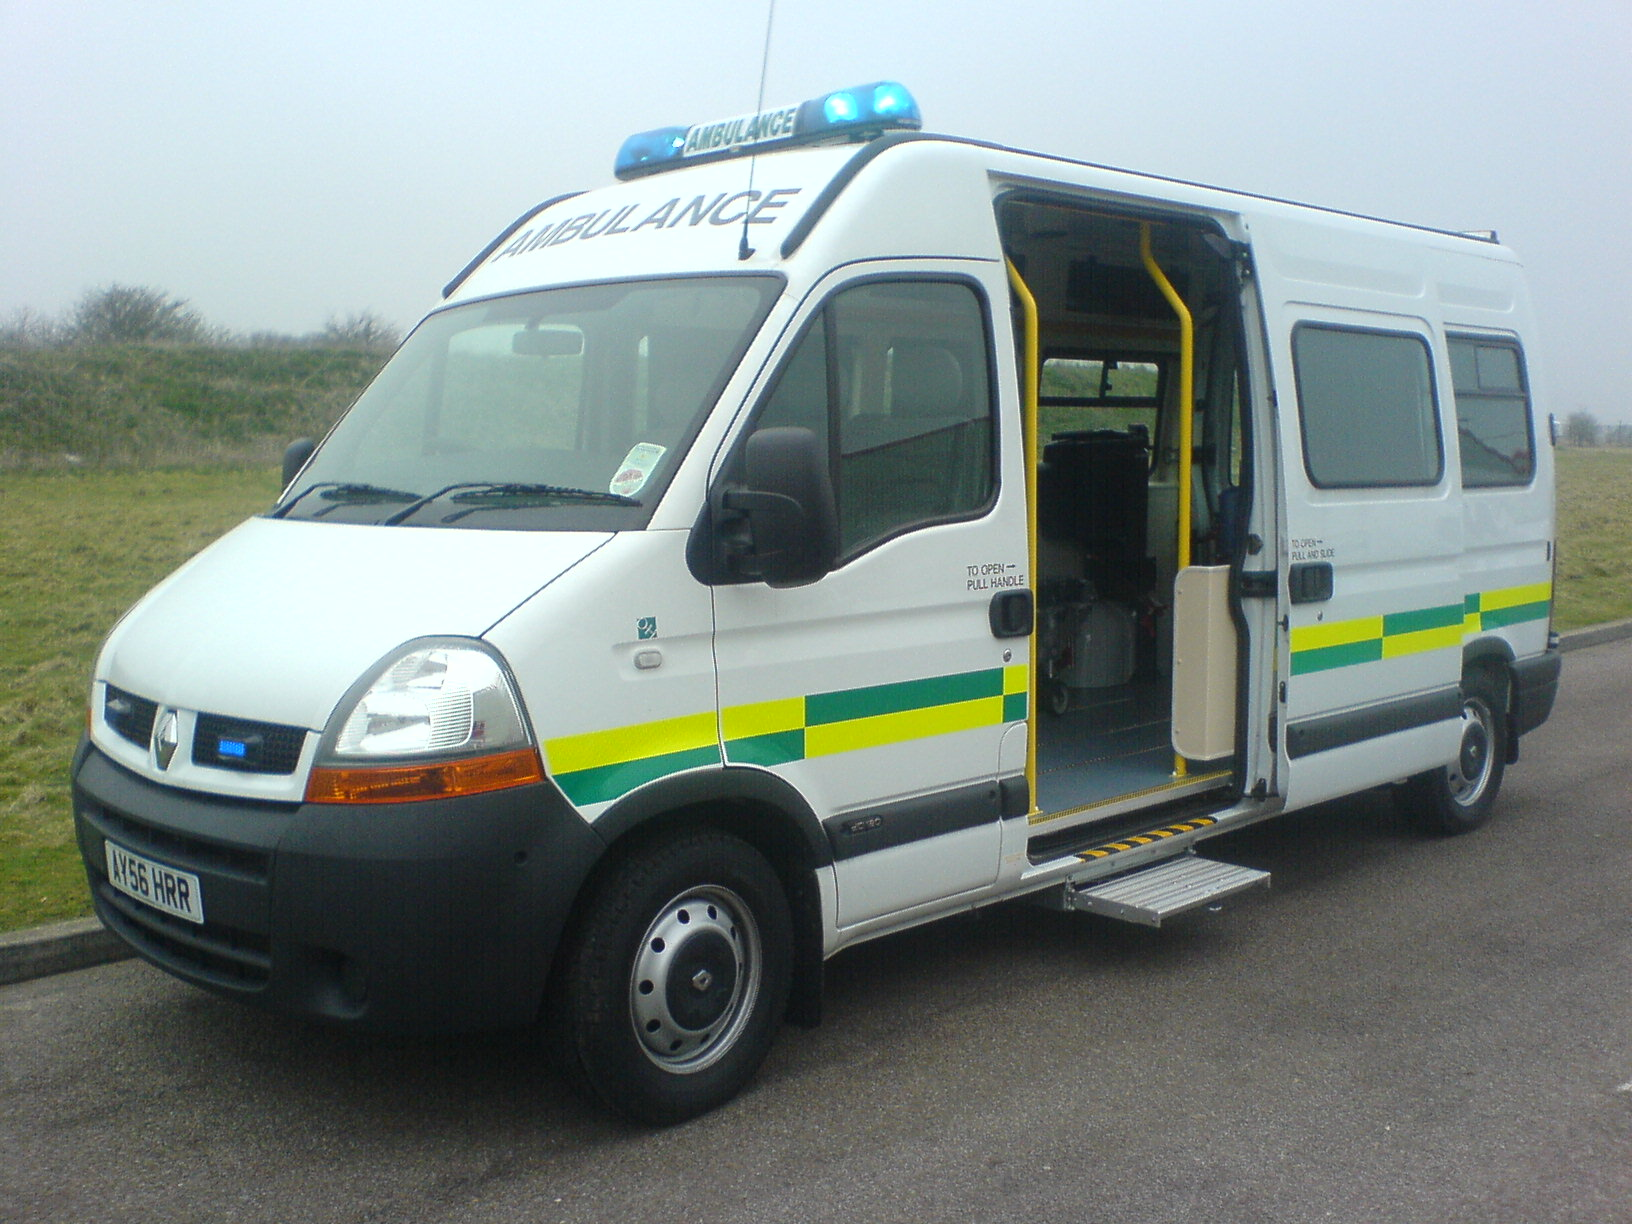 Meditransport - A range of ambulance and emergency vehicles